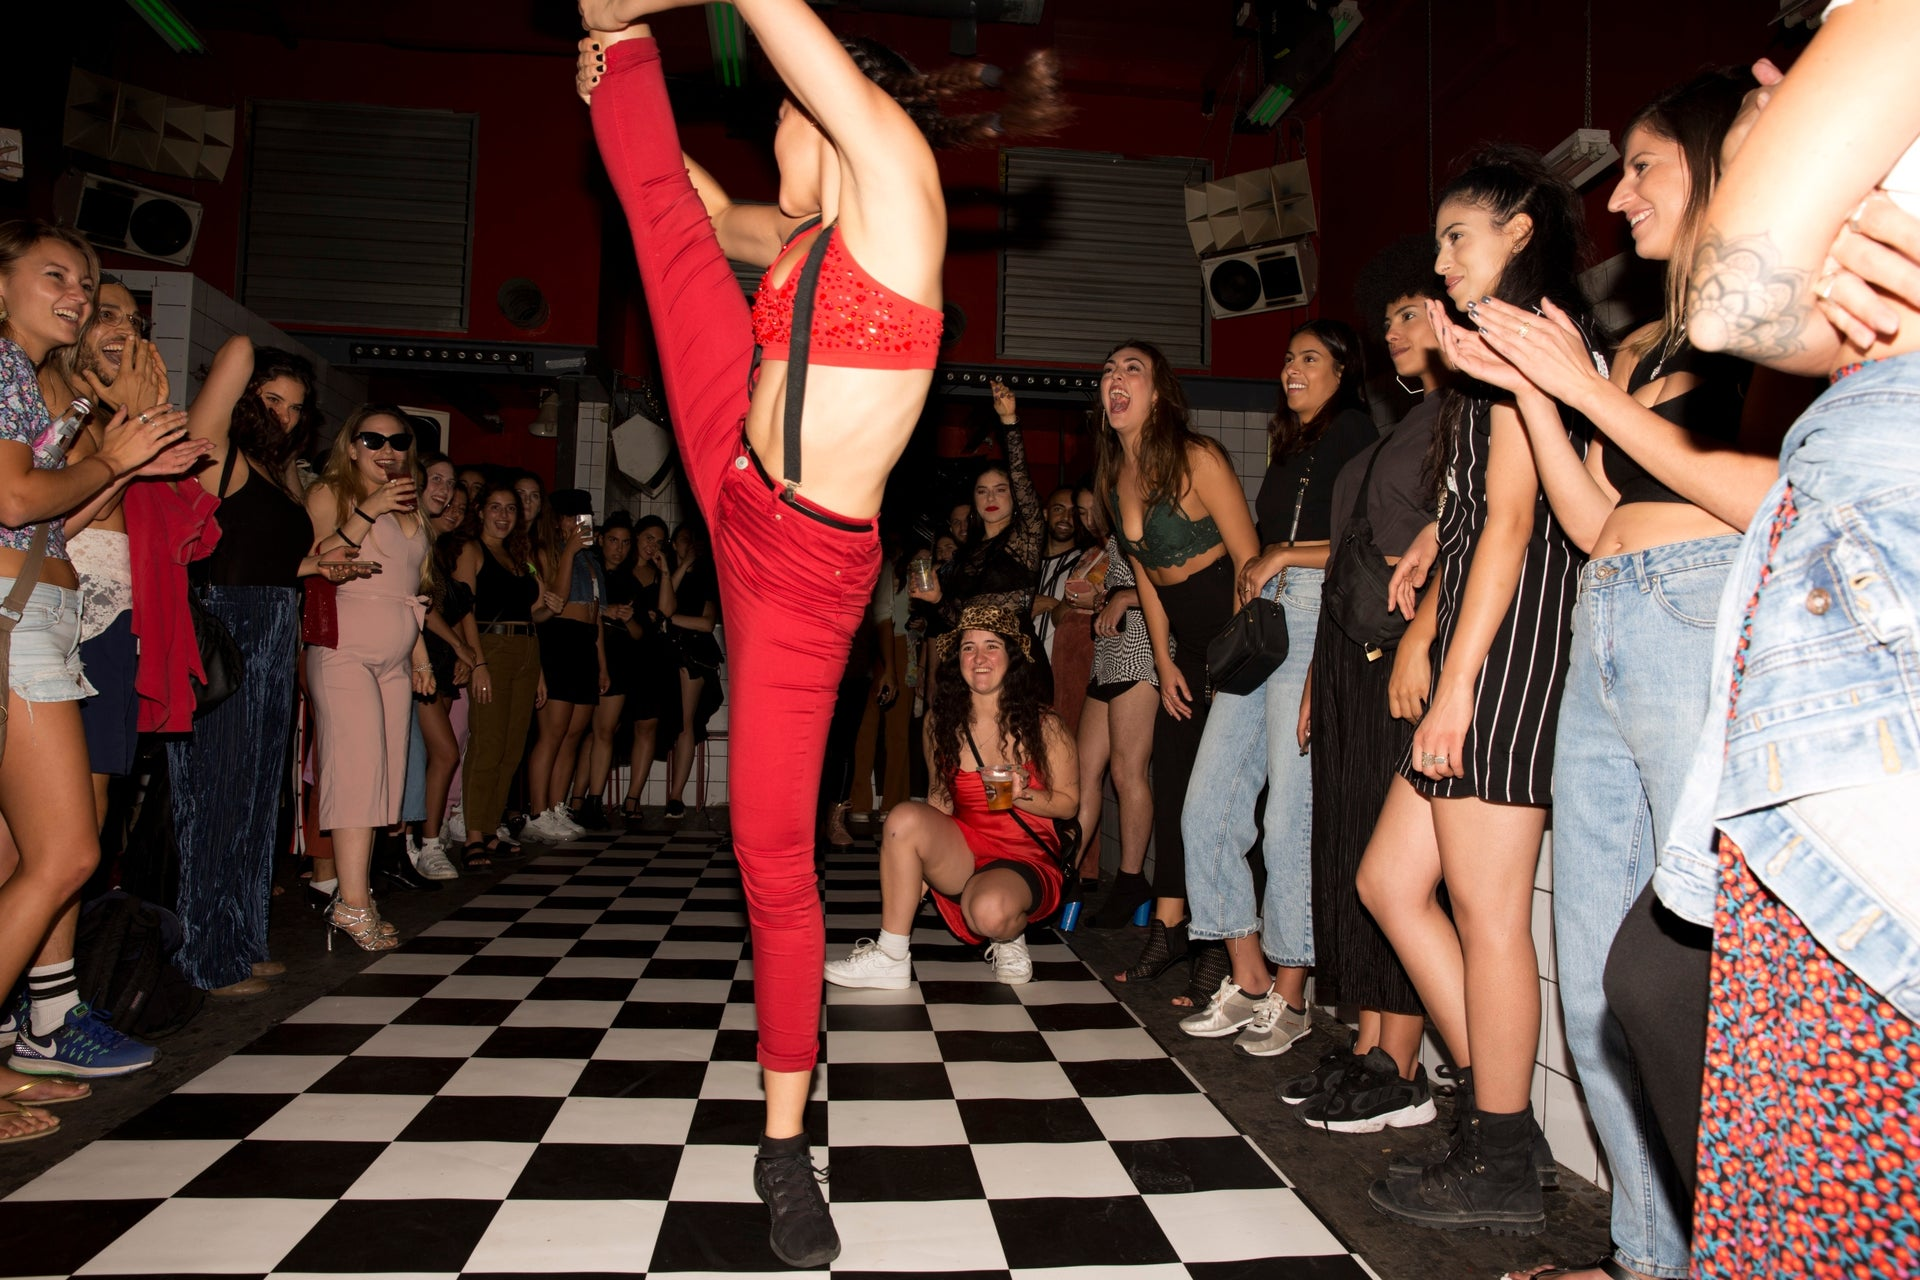 """Gaya Huller performing at the Alphabet Club ball in Tel Aviv, September 26, 2019. """"We need a real ball scene, with performers and houses,"""" she says."""